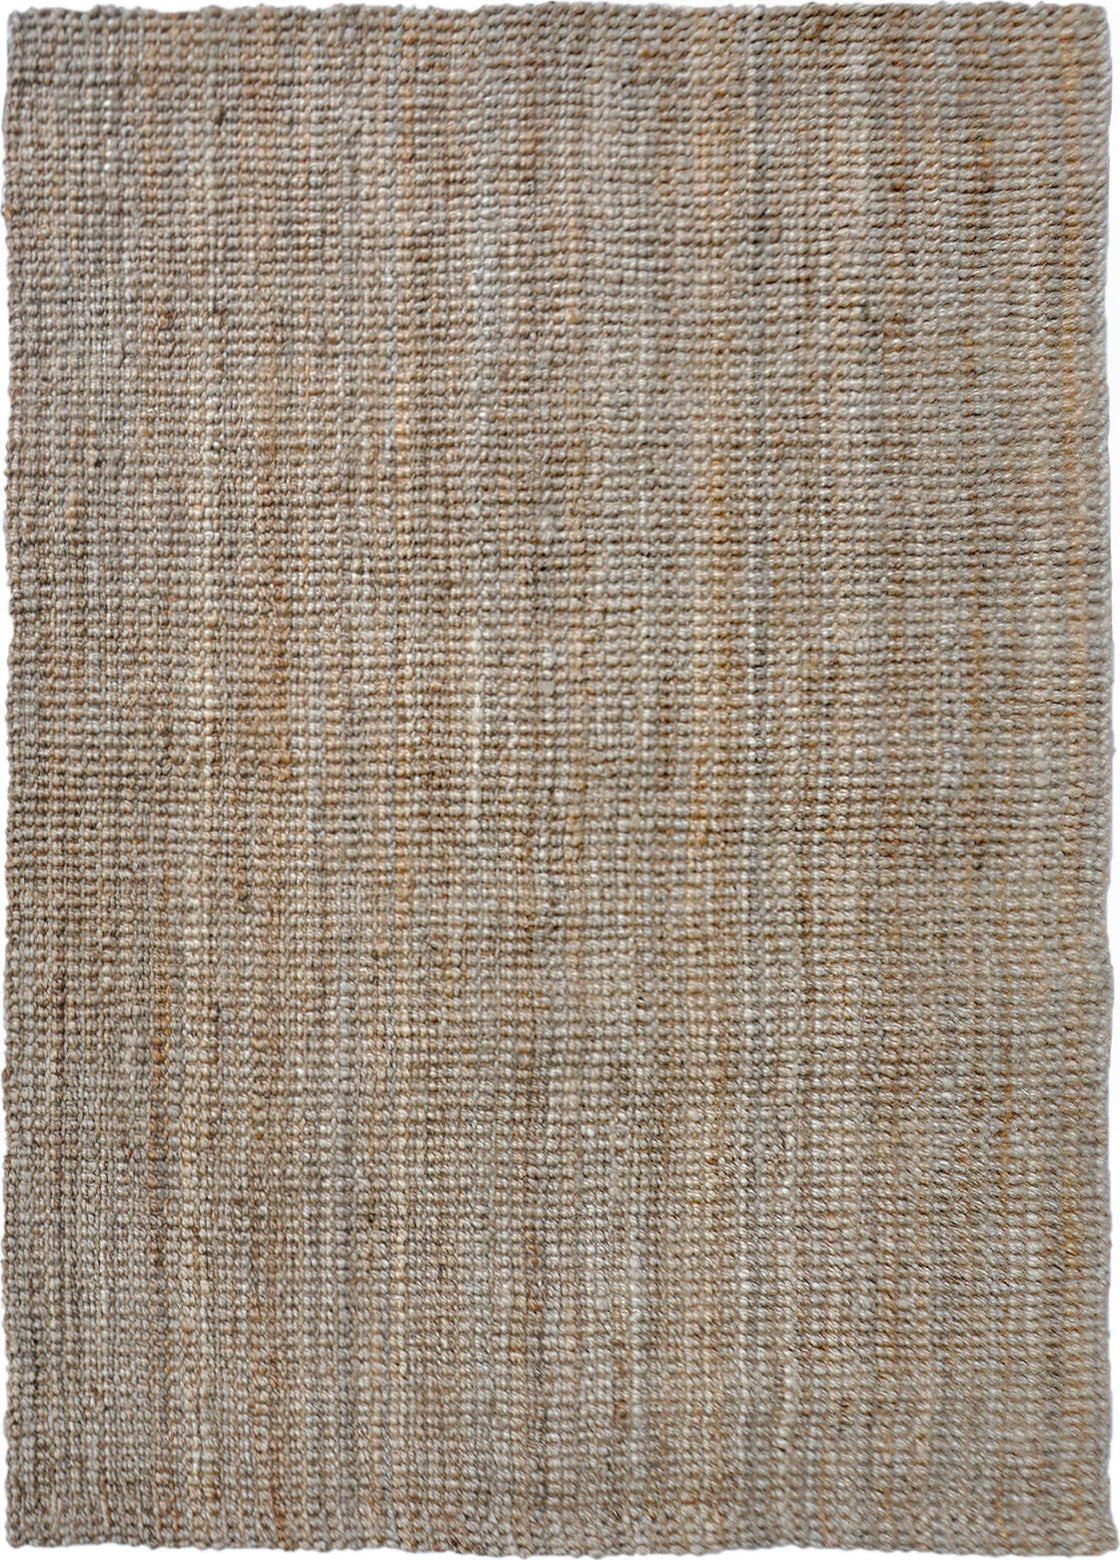 Trans Ocean Terra Boucle Natural Area Rug Mirror by Liora Manne main image